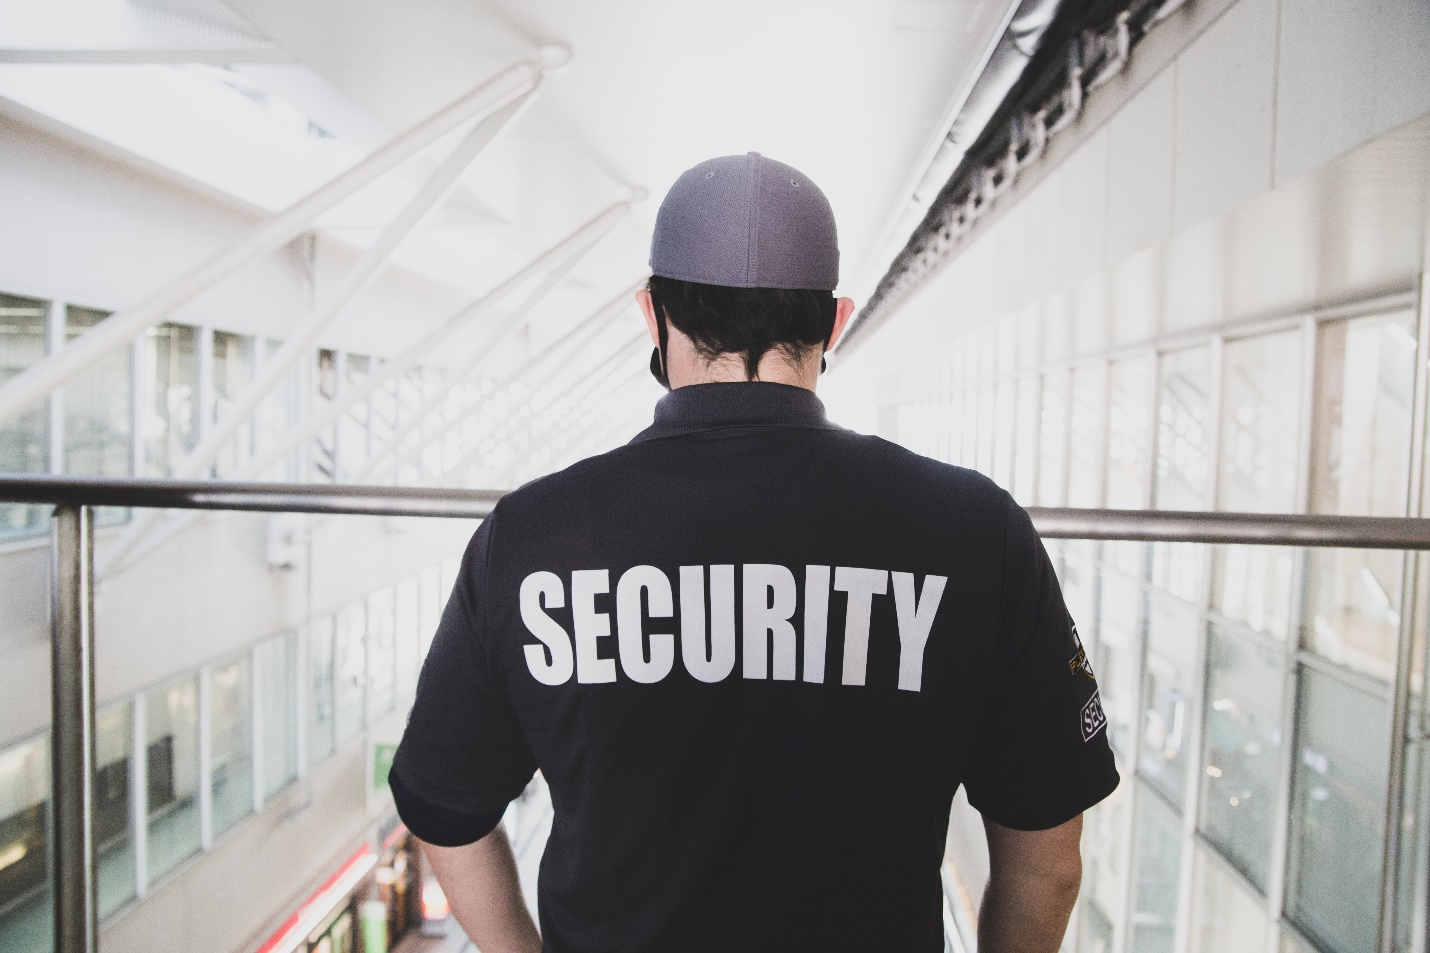 Security guard standing on a balcony